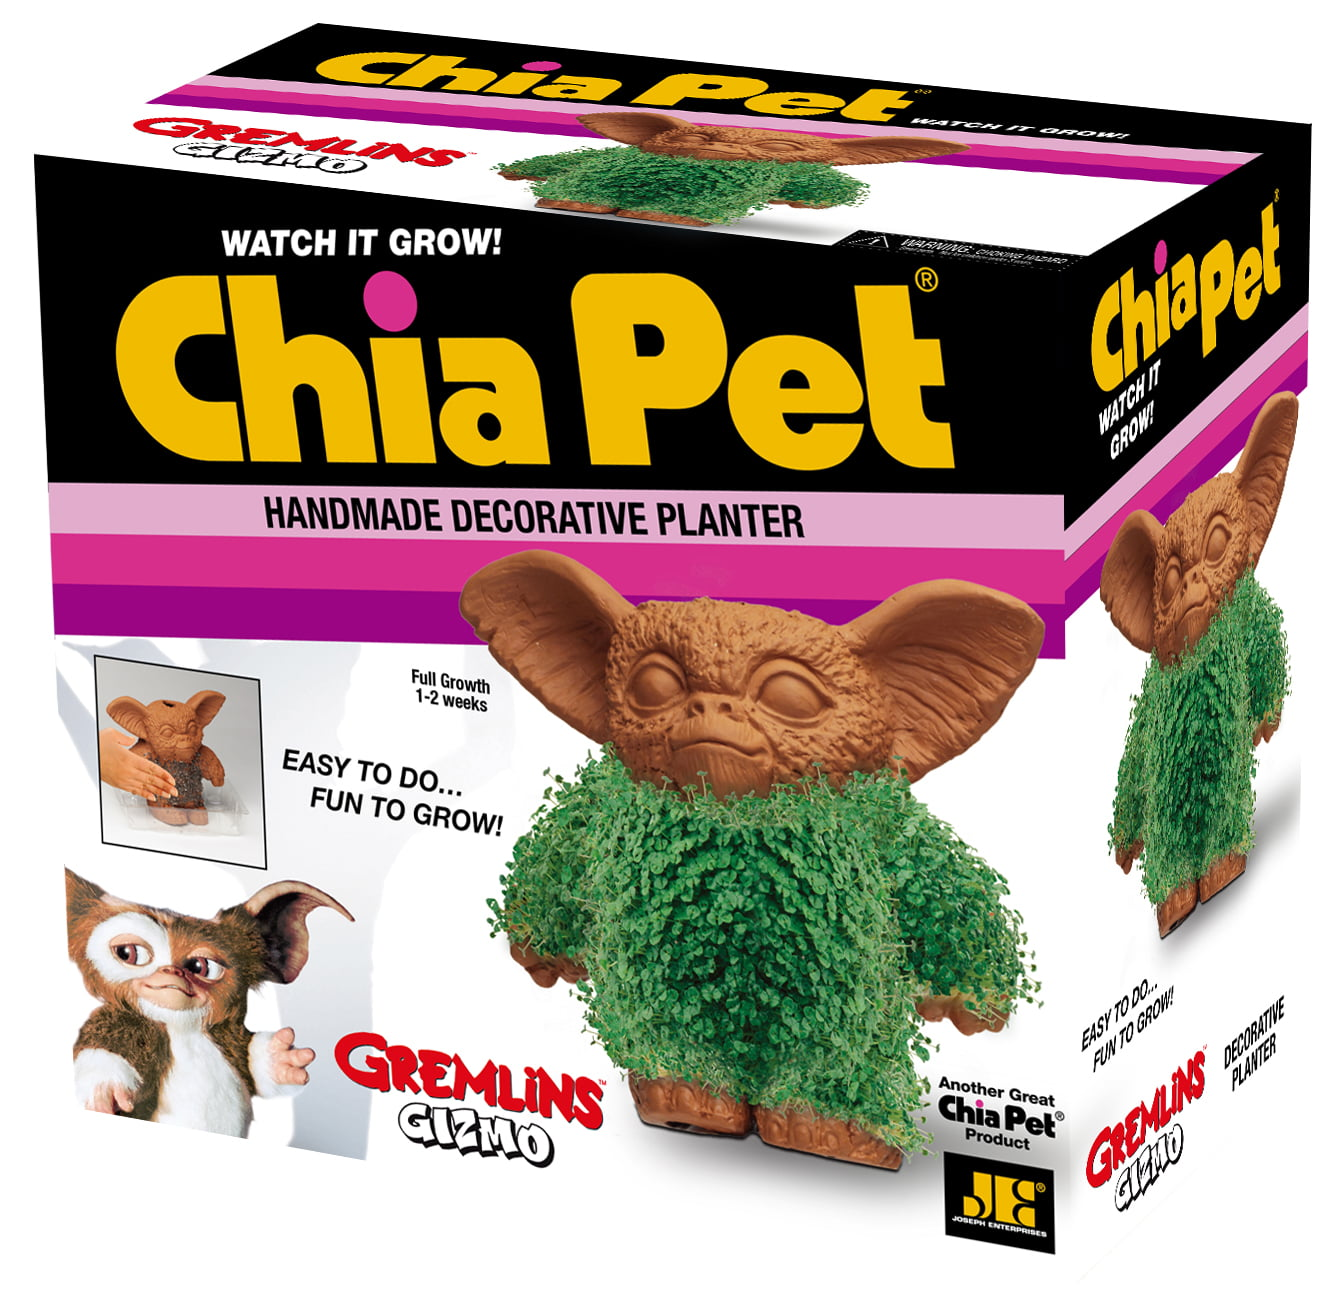 "Chia Pet ""Gizmo"" (Gremlins) - Decorative Planter. Fun to Grow!"